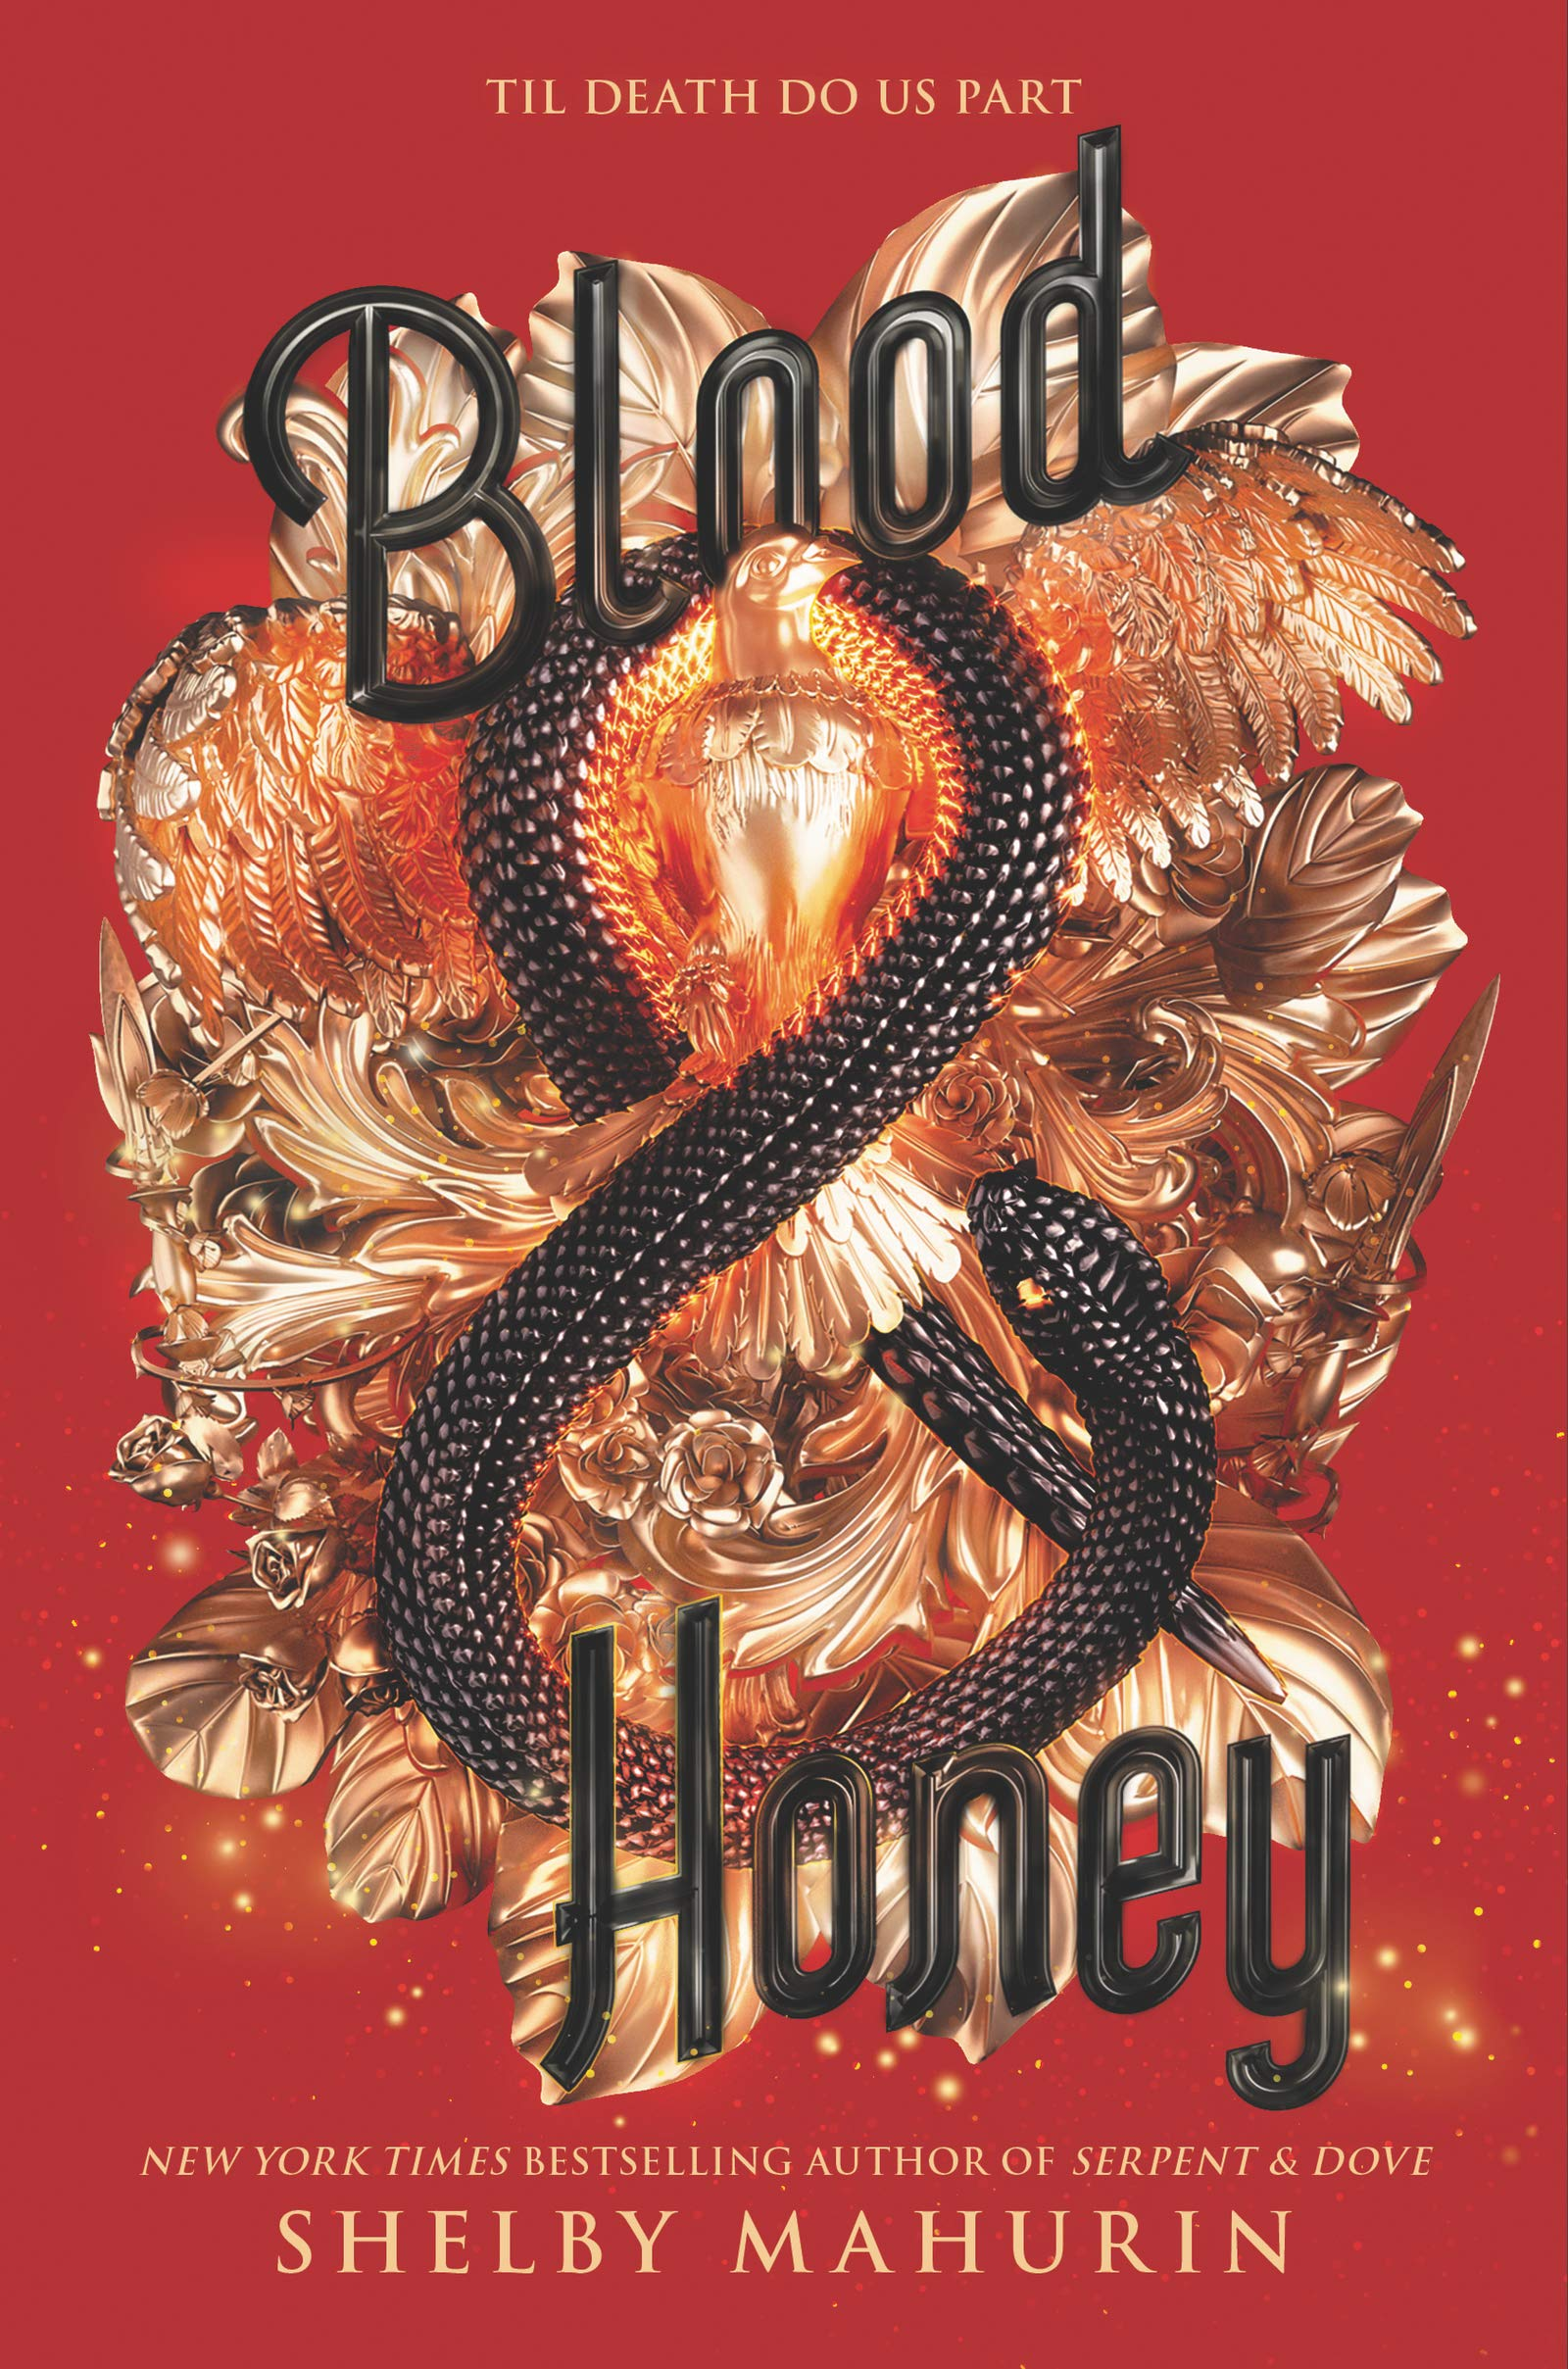 Amazon.com: Blood & Honey (Serpent & Dove) (9780062878052 ...